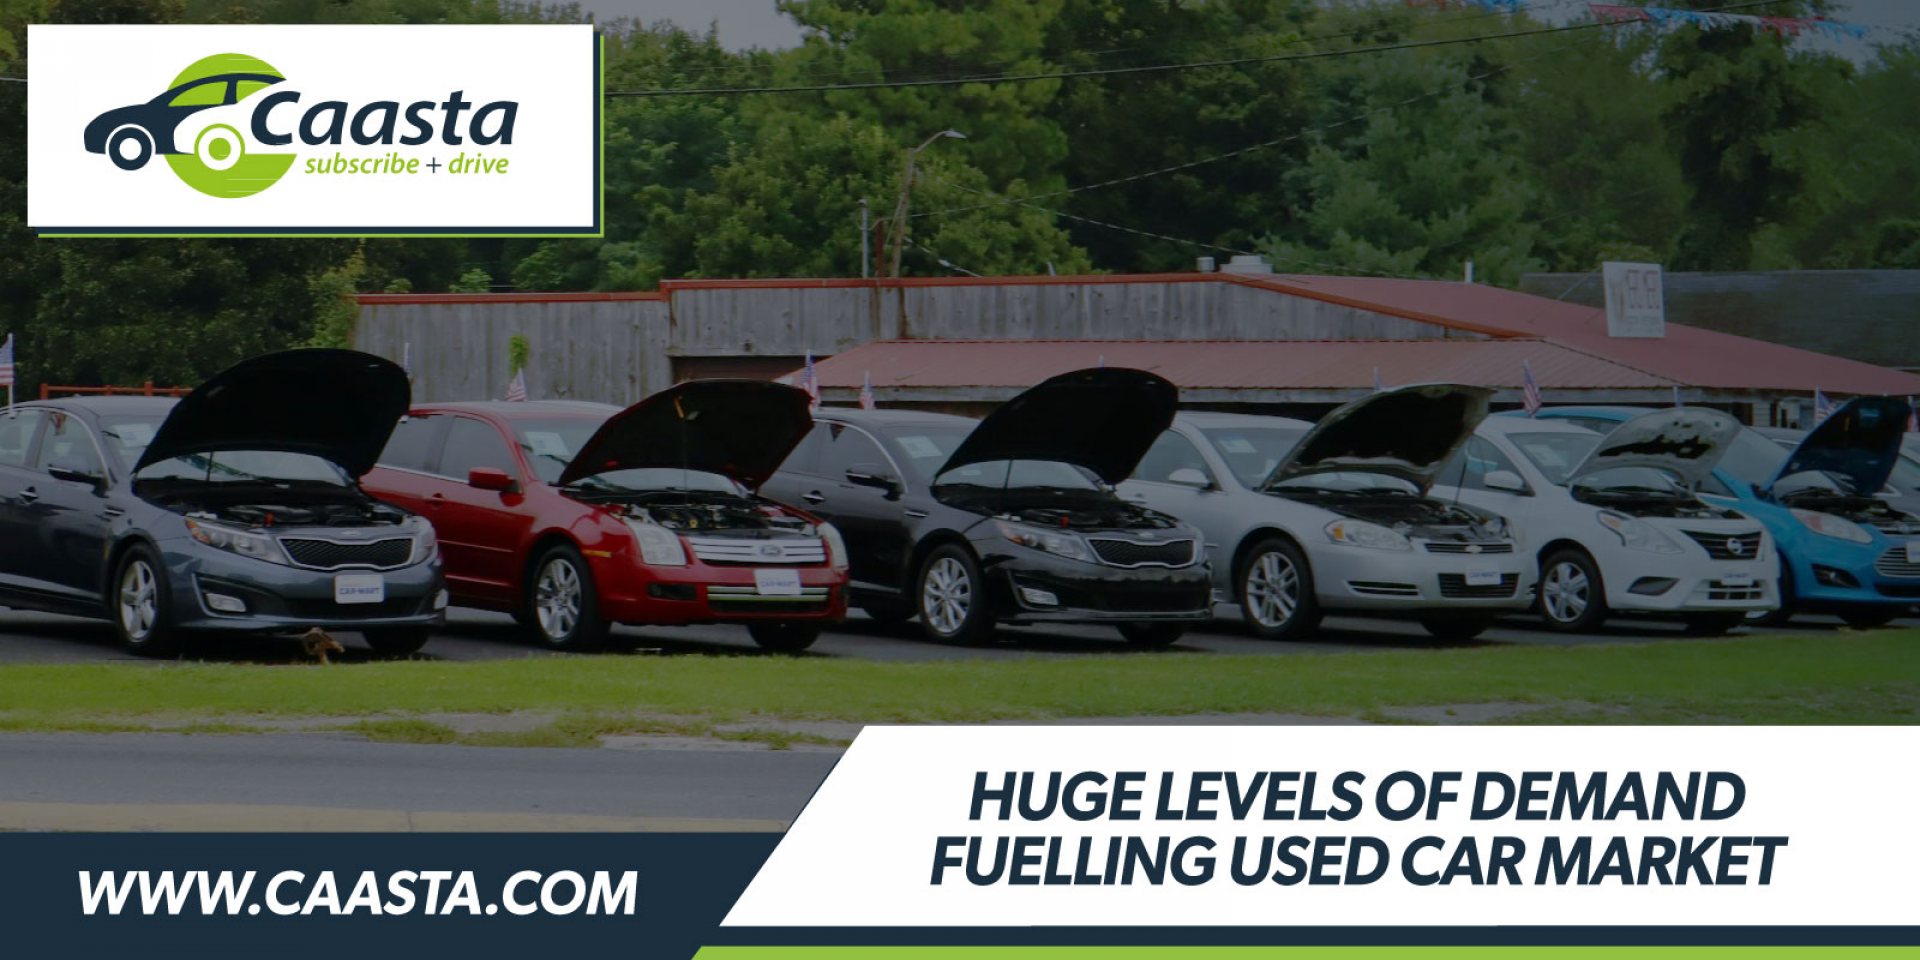 'Extraordinary' levels of demand fuelling used car market